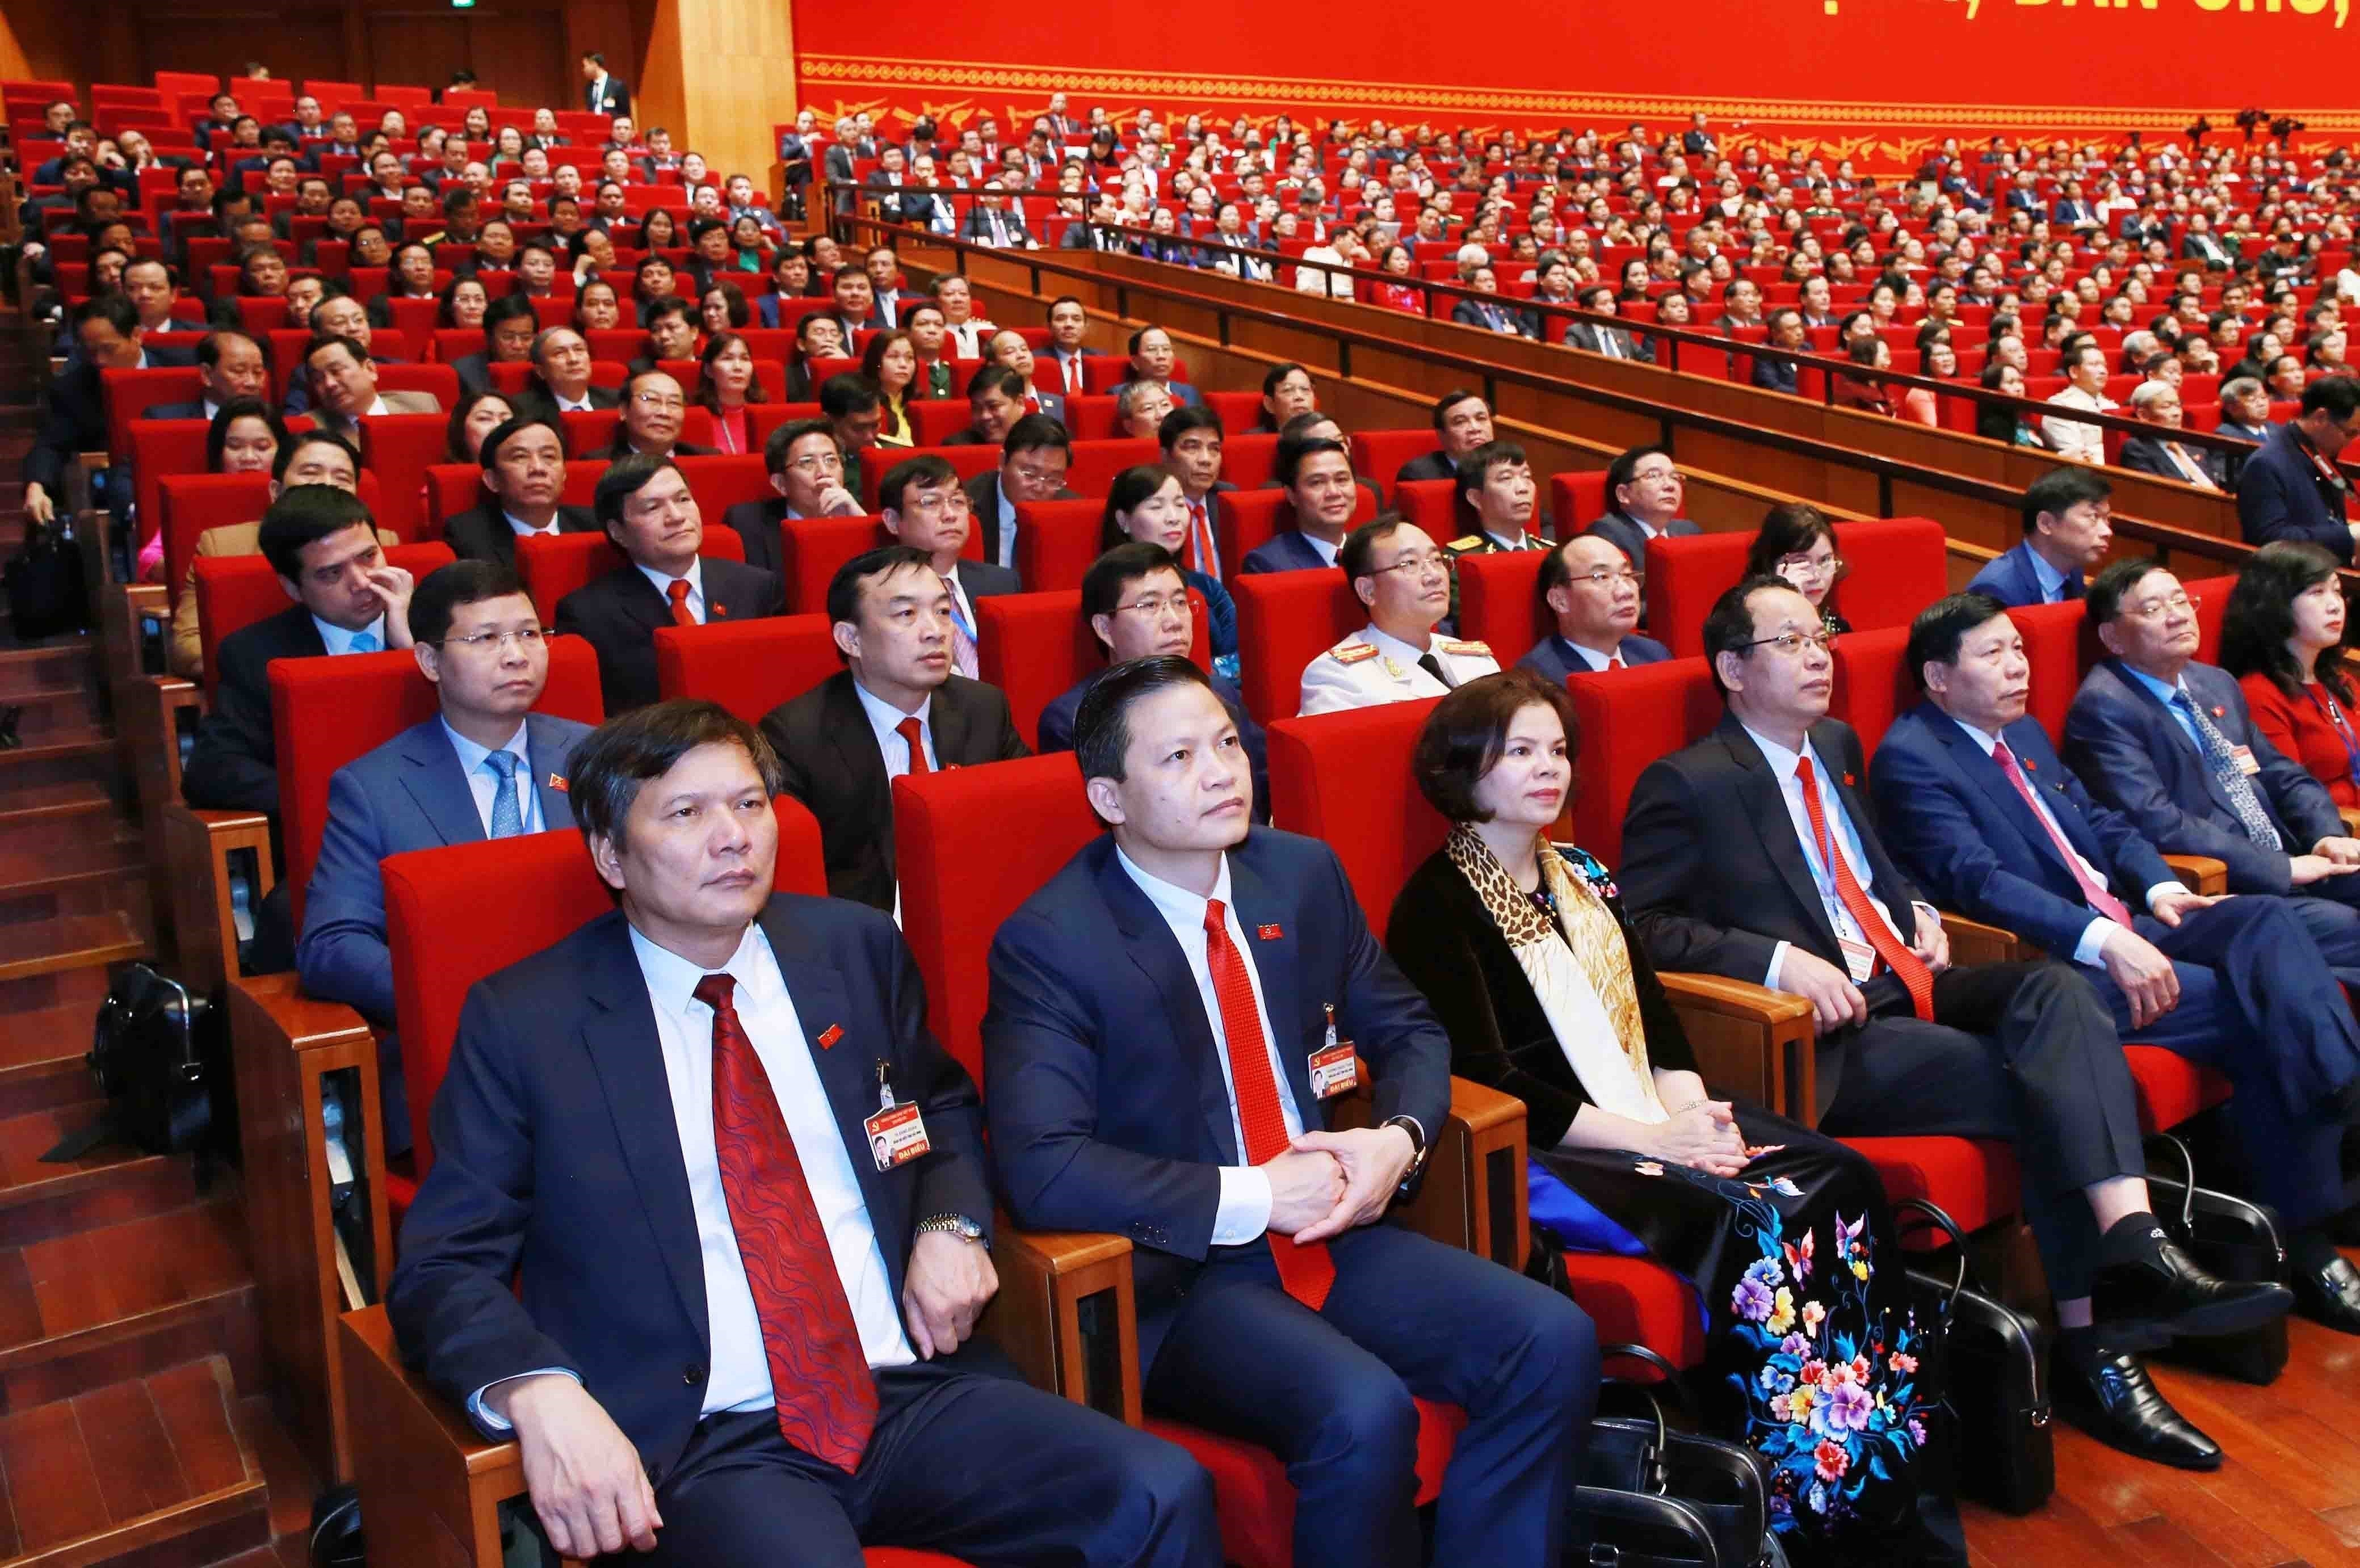 Congress delegates discuss documents on third working day hinh anh 5